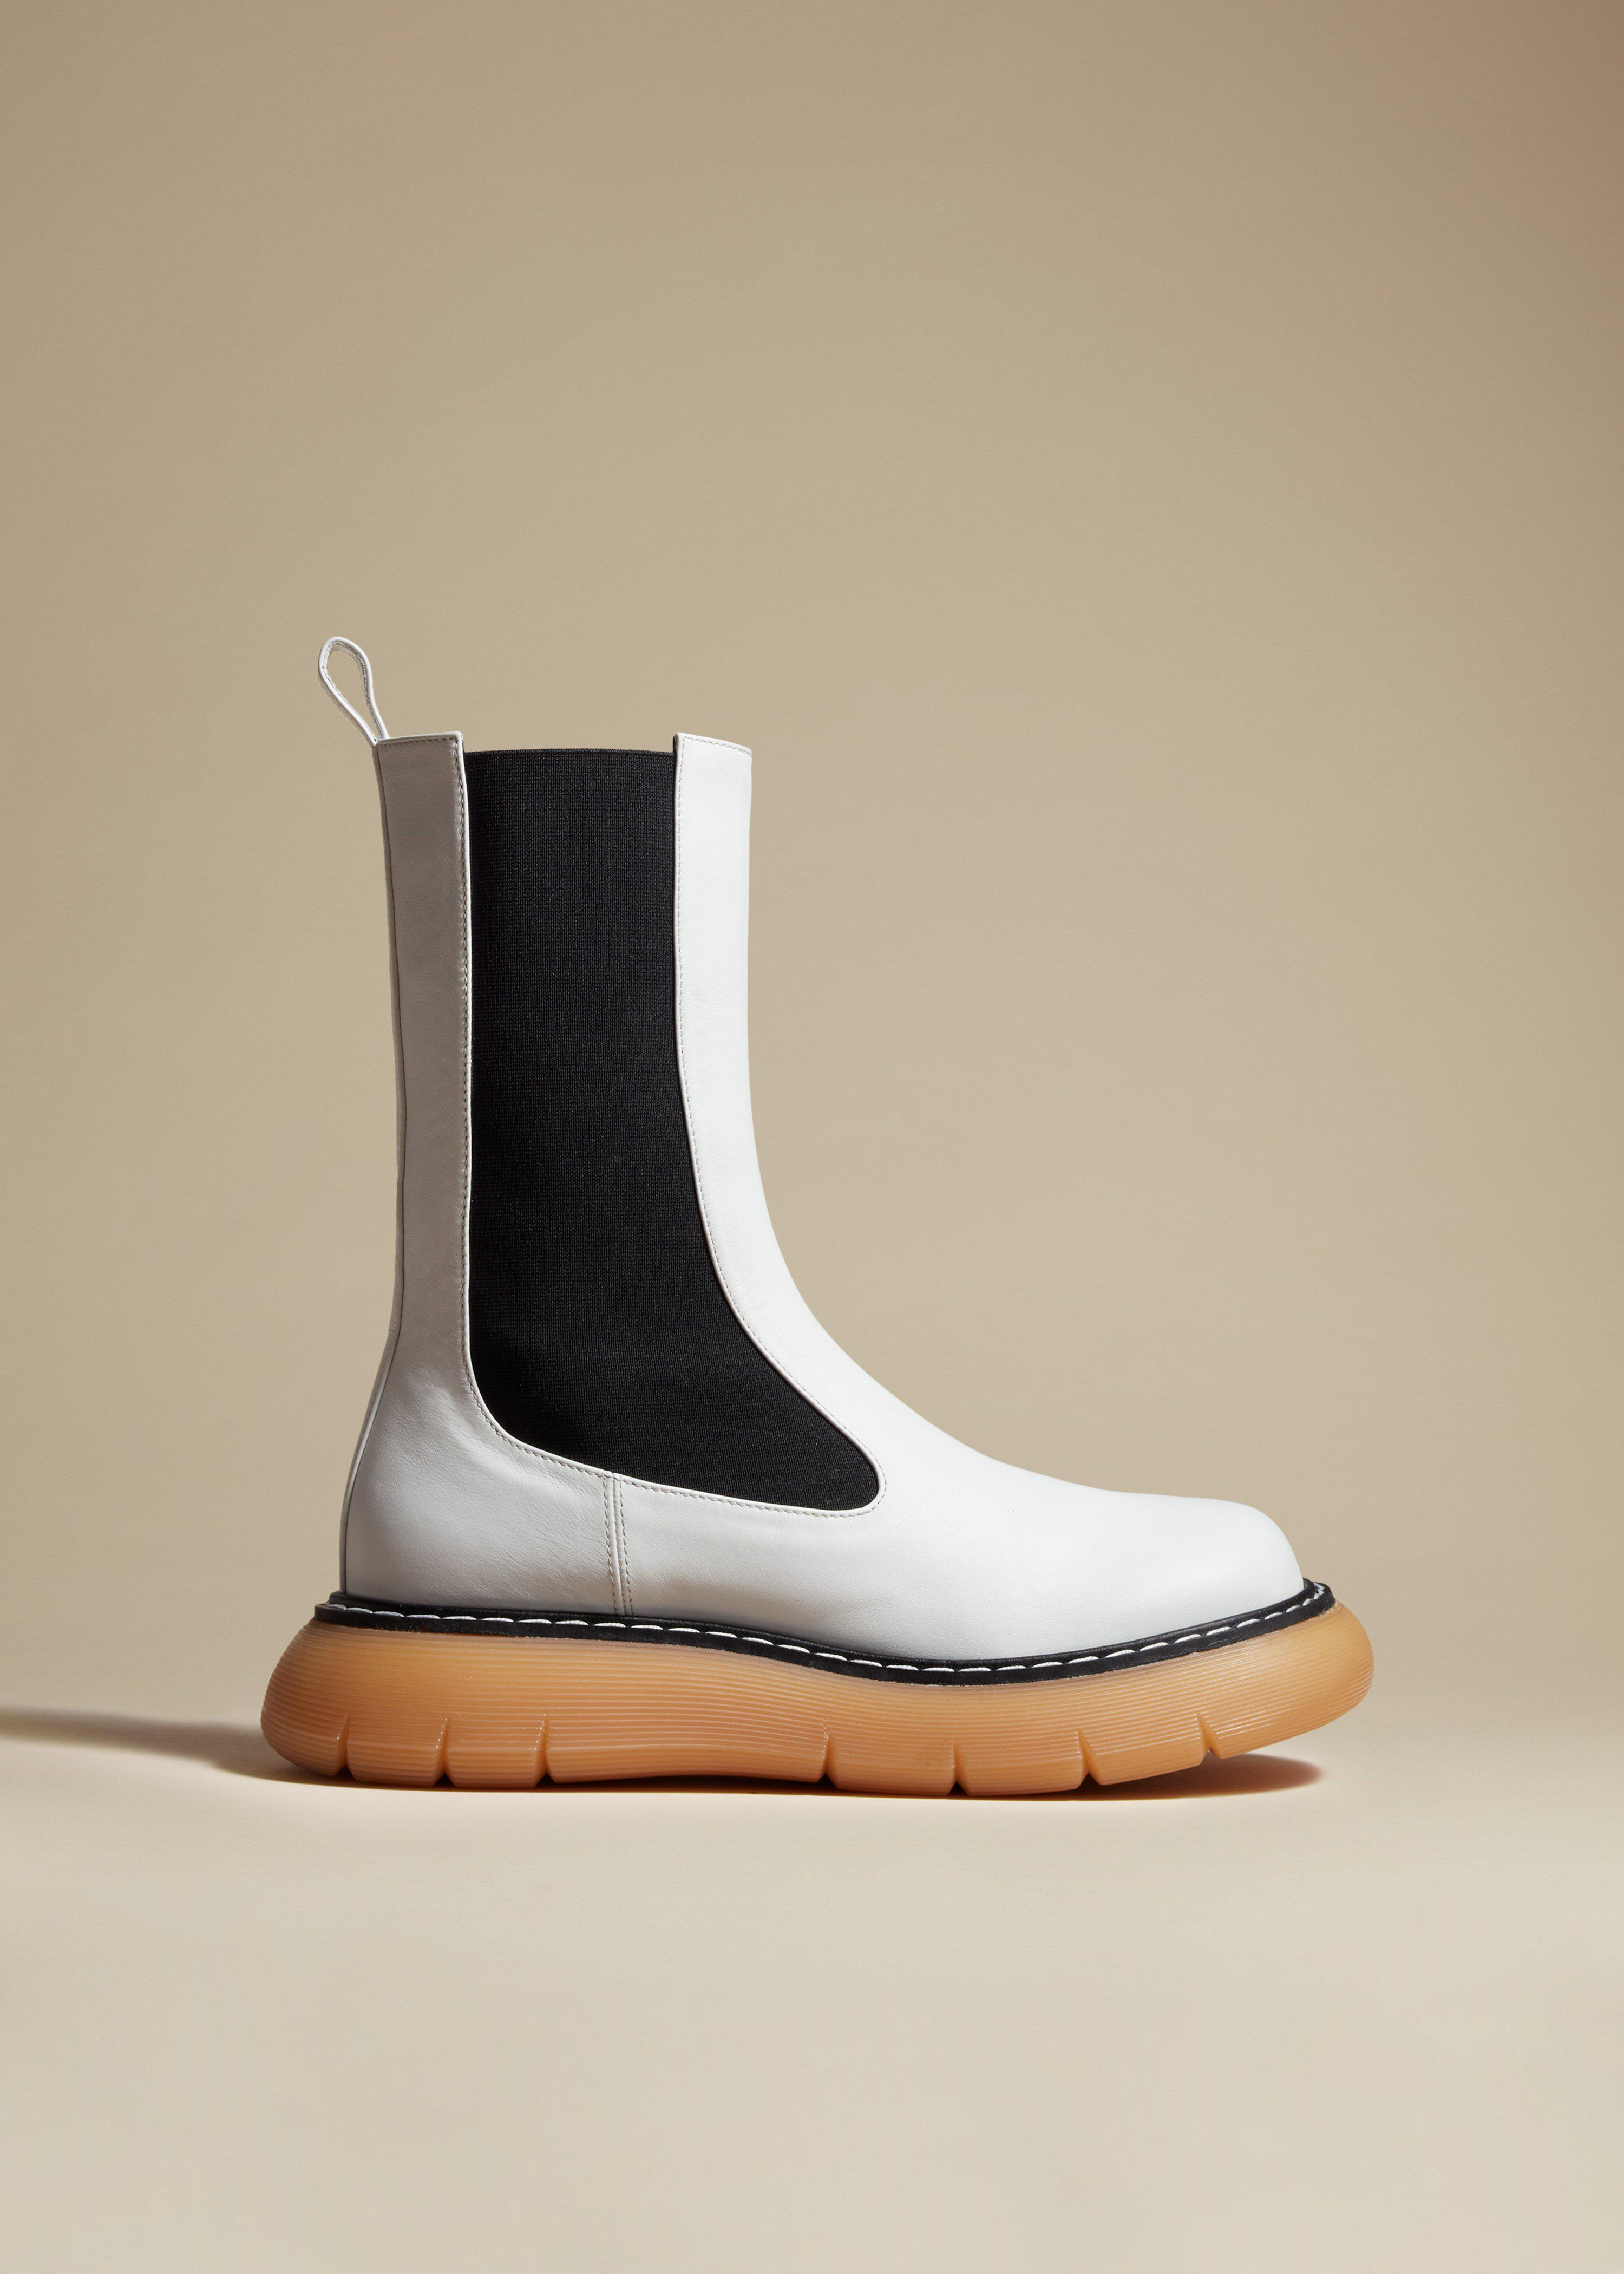 The Bleecker Boot in White Leather